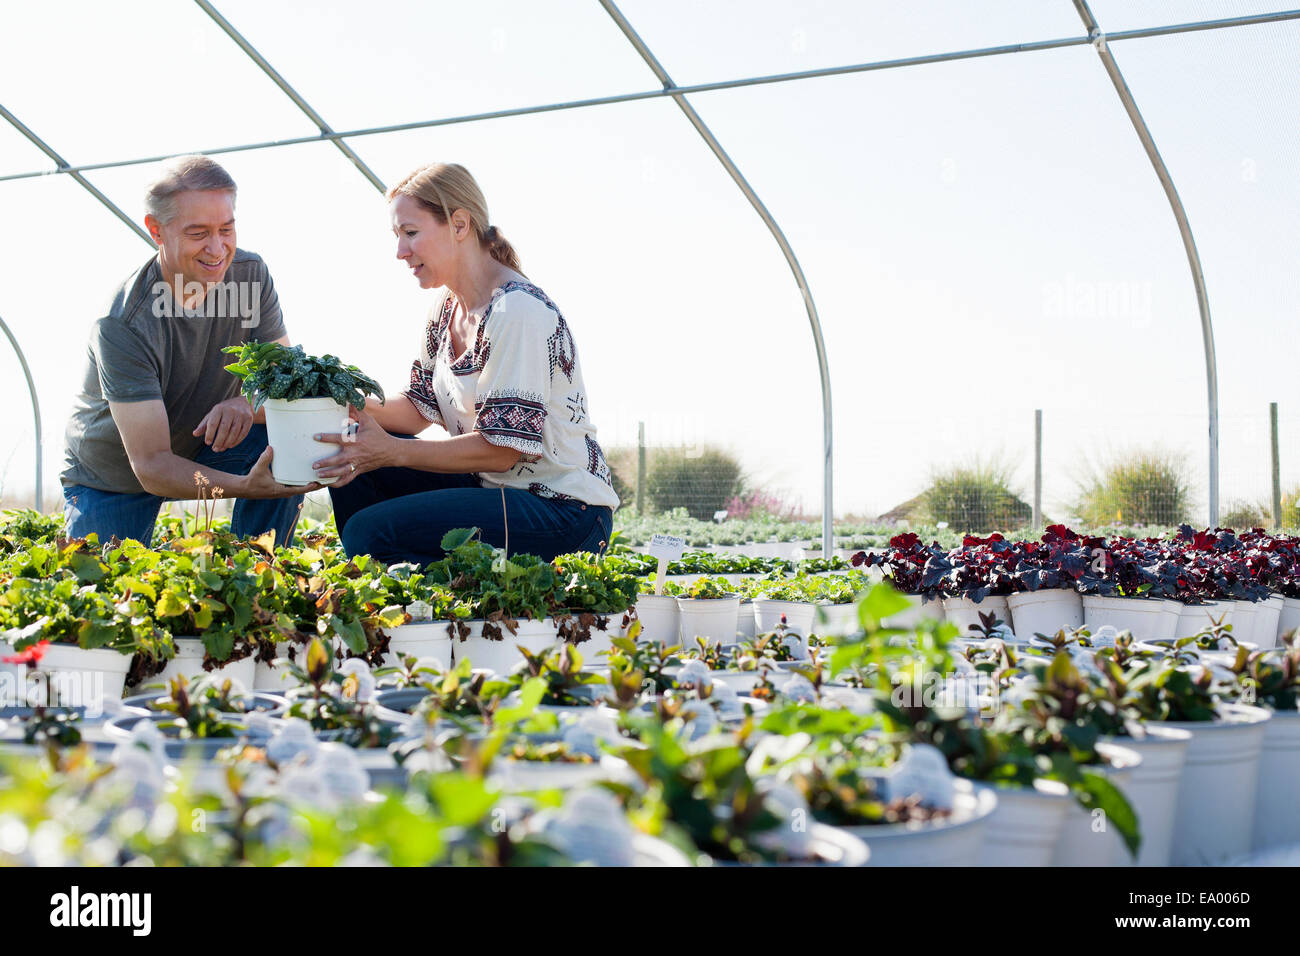 Male horticulturalist advising female customer on potted plant in plant nursery polytunnel - Stock Image